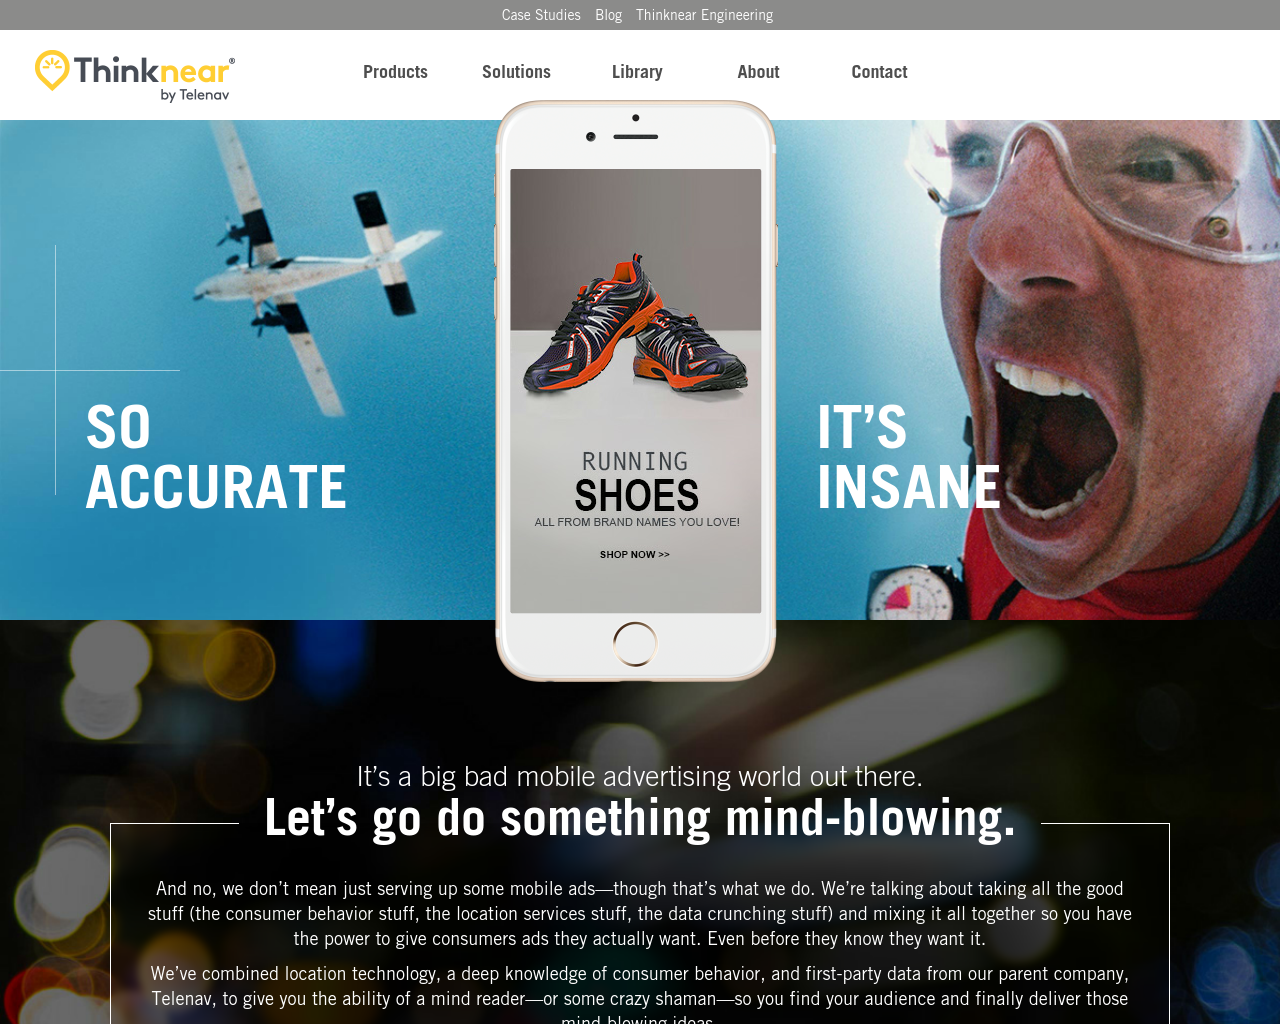 Thinknear-by-Telenav-Advertising-Reviews-Pricing